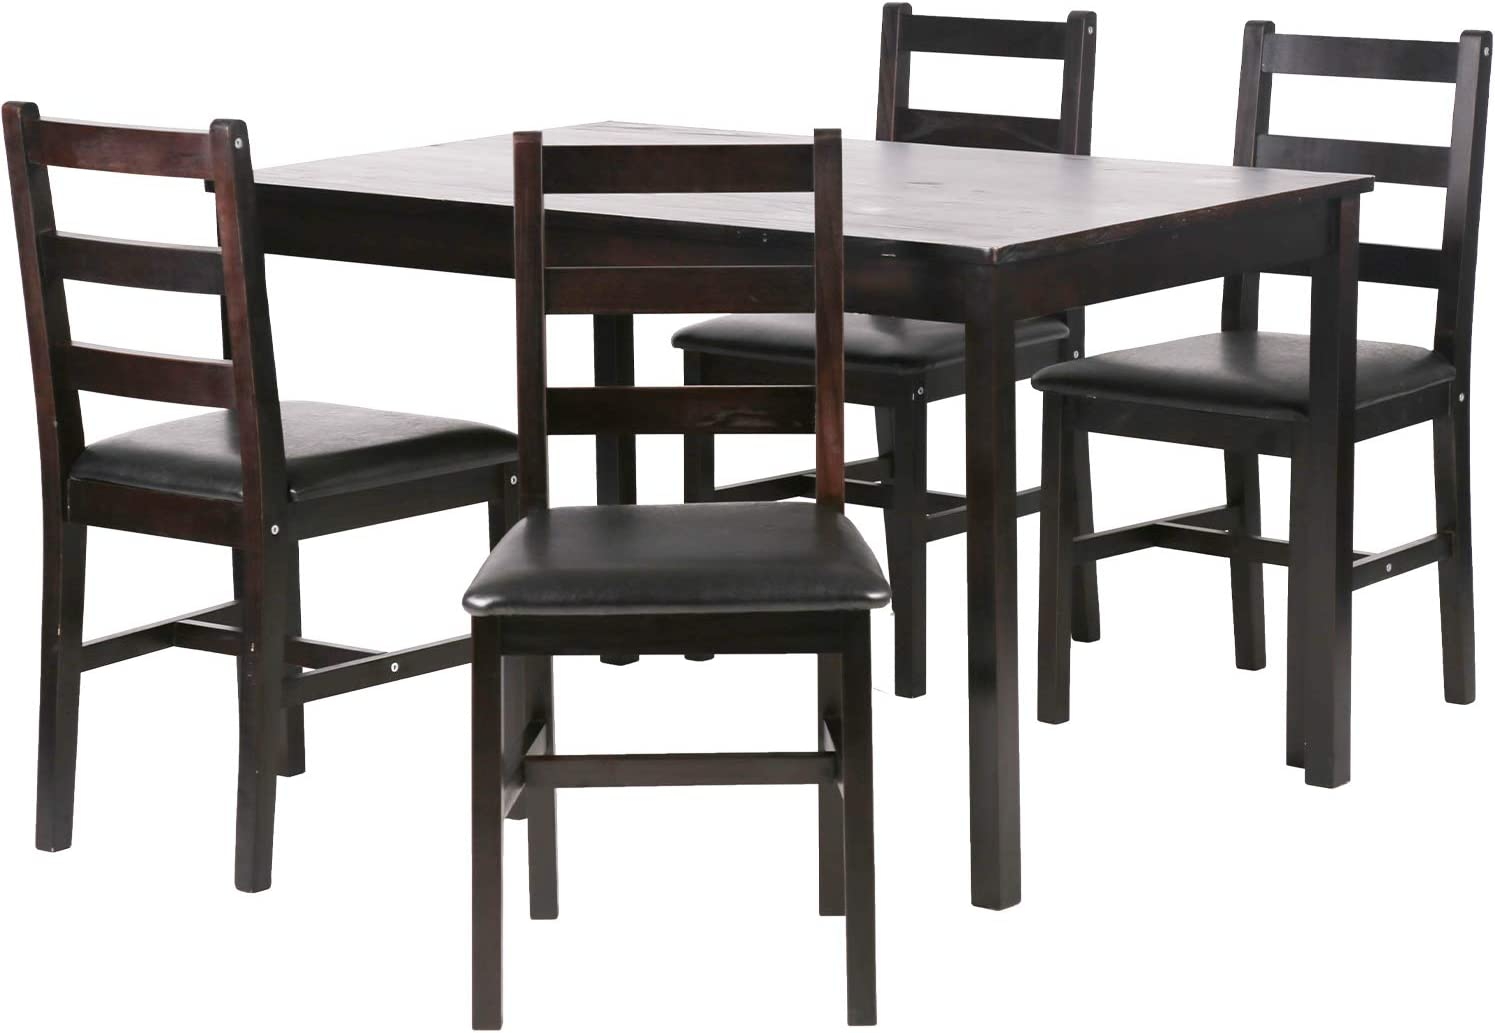 Dining Table Set Kitchen Dining Table Set Wood Table and Chairs Set Kitchen  Table and Chairs for 9 Person